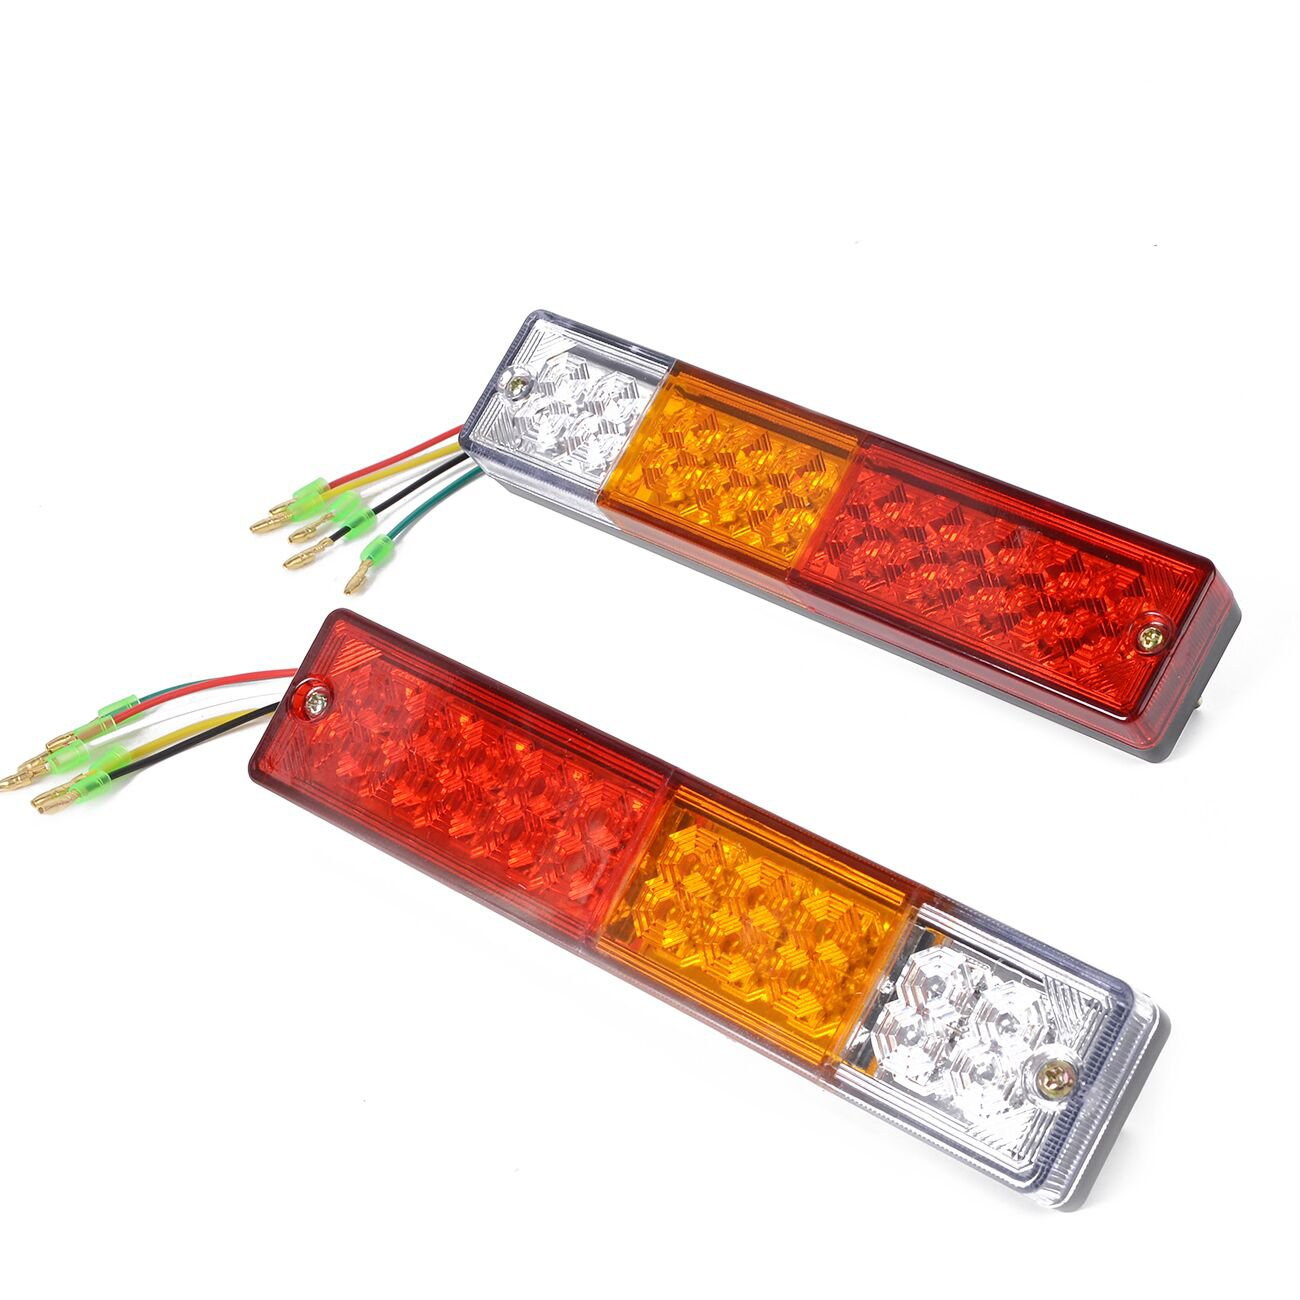 Turn Signals,25-Foot Harness HQAP 2019 Latest 12V Submersible LED Trailer Light kit: New Two Combination Parking Lights License Plate Bracket and mounting Hardware Package taillights